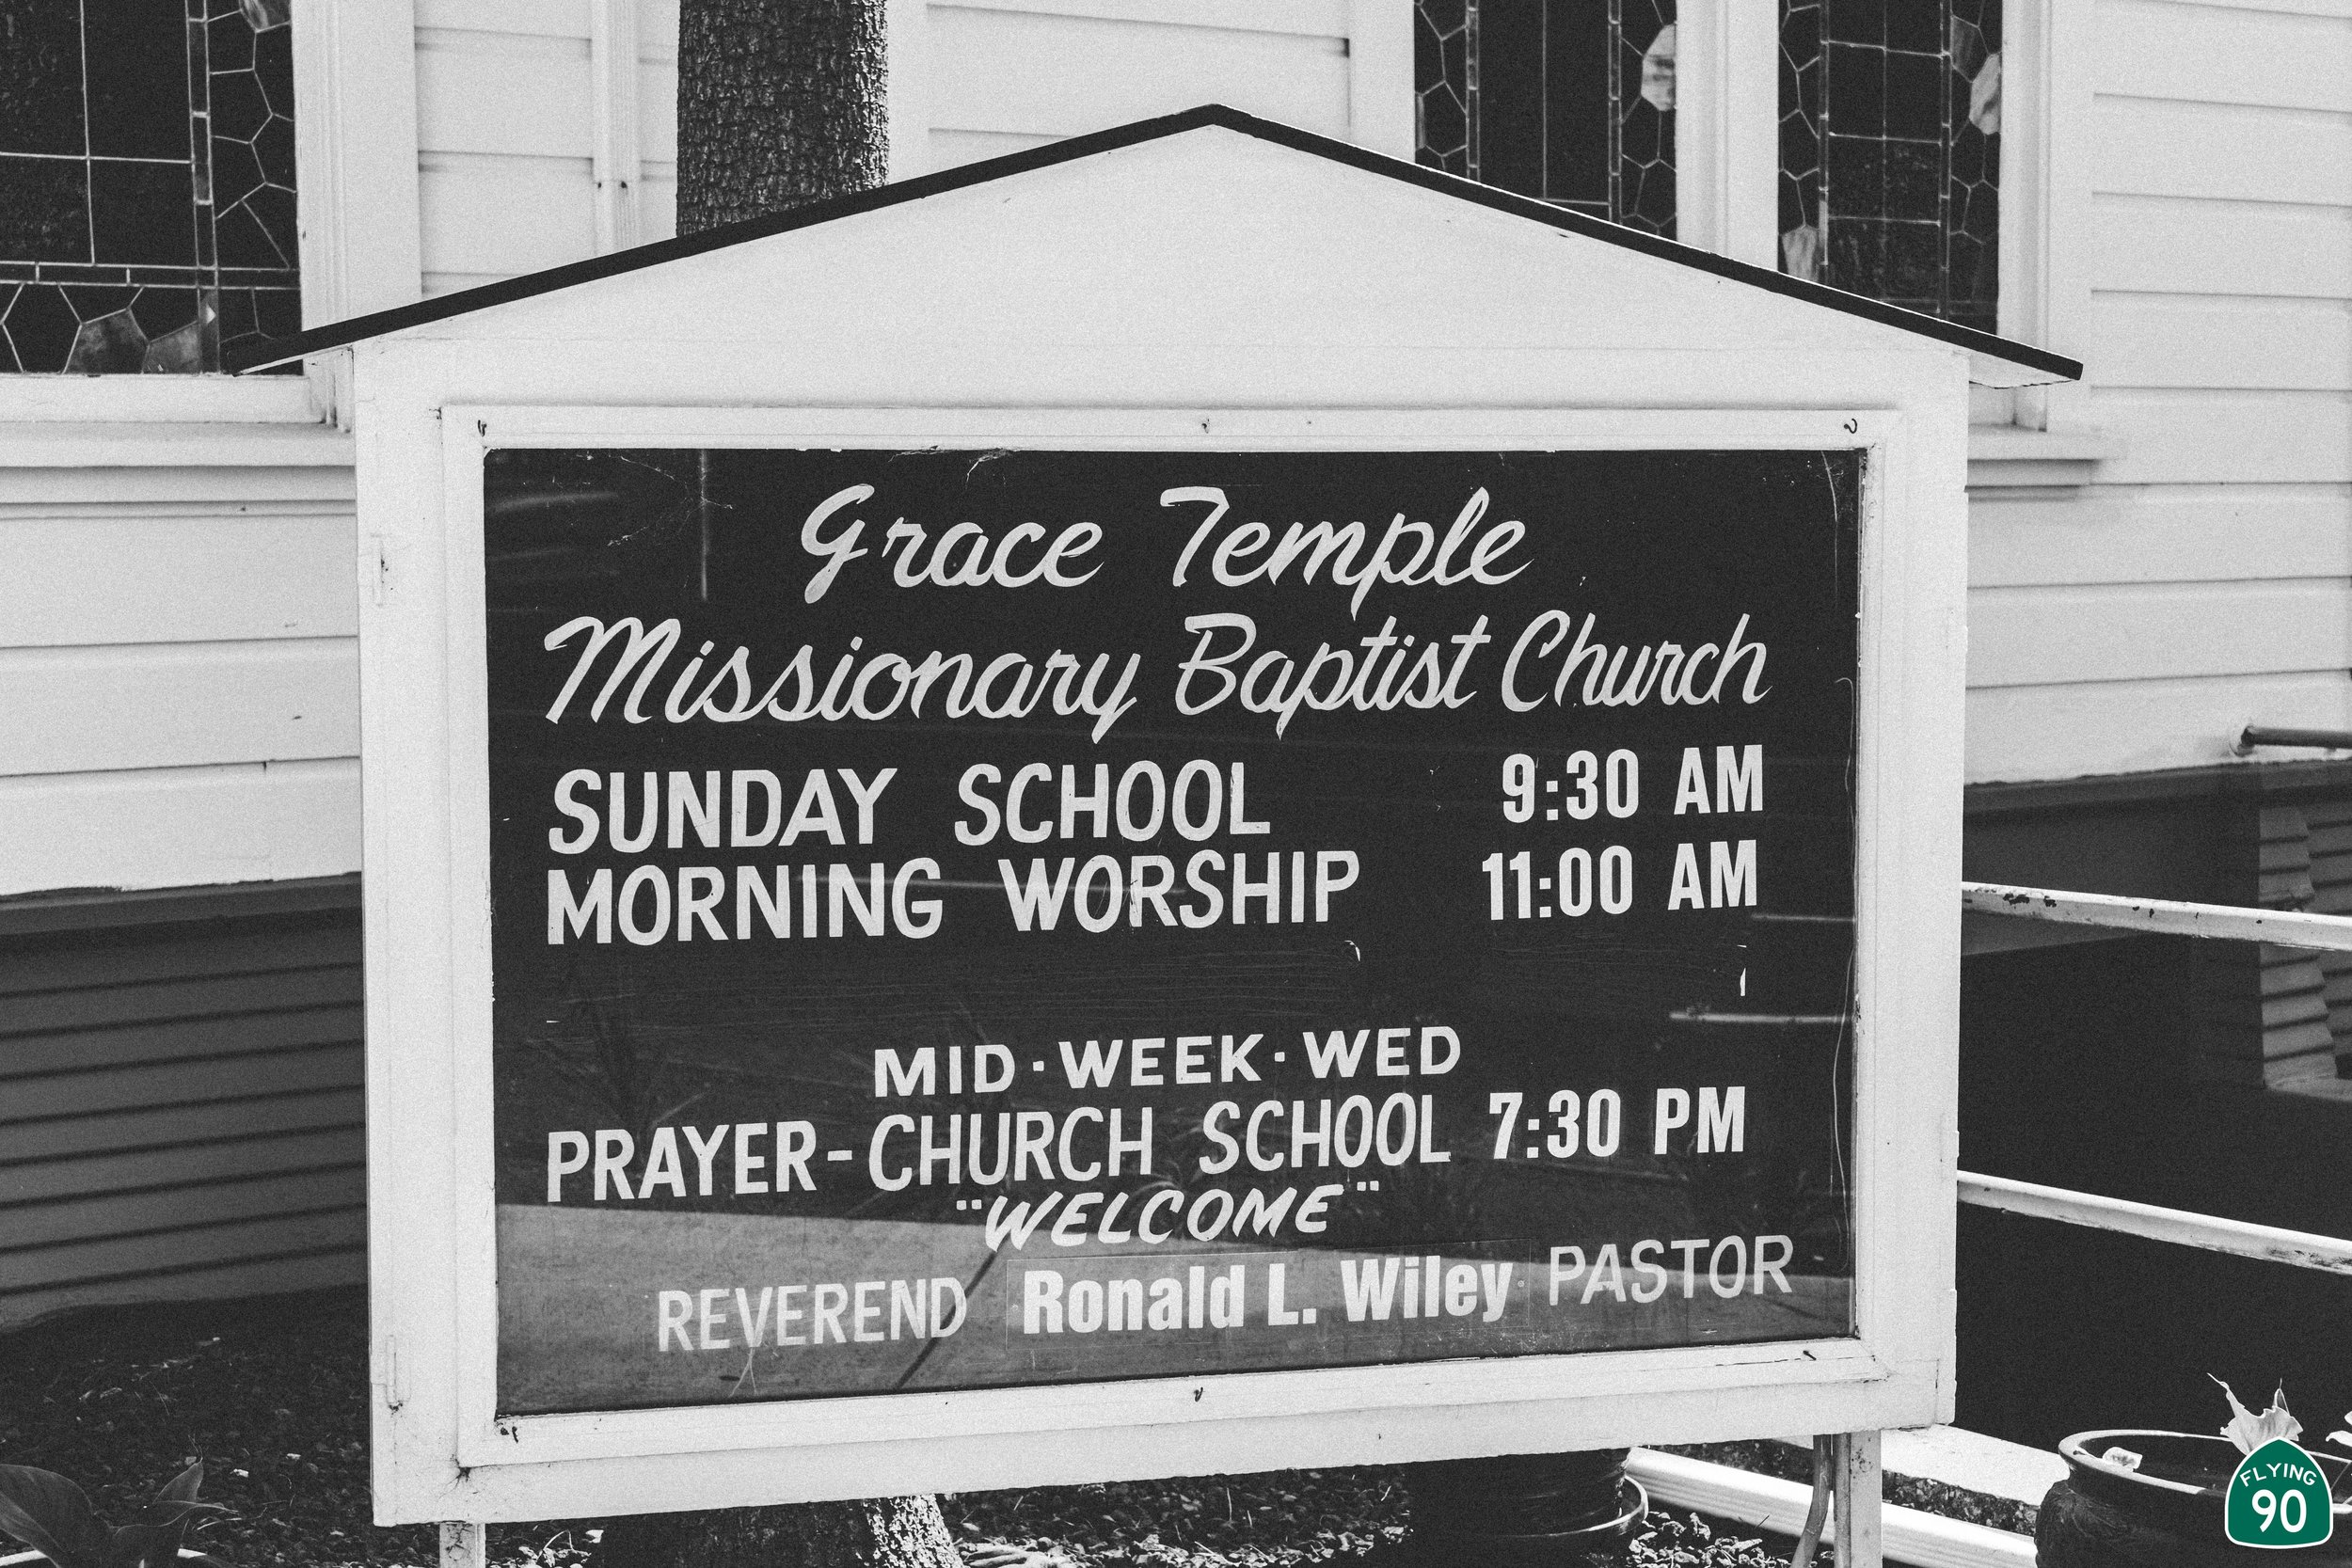 Grace Temple Missionary Baptist Church